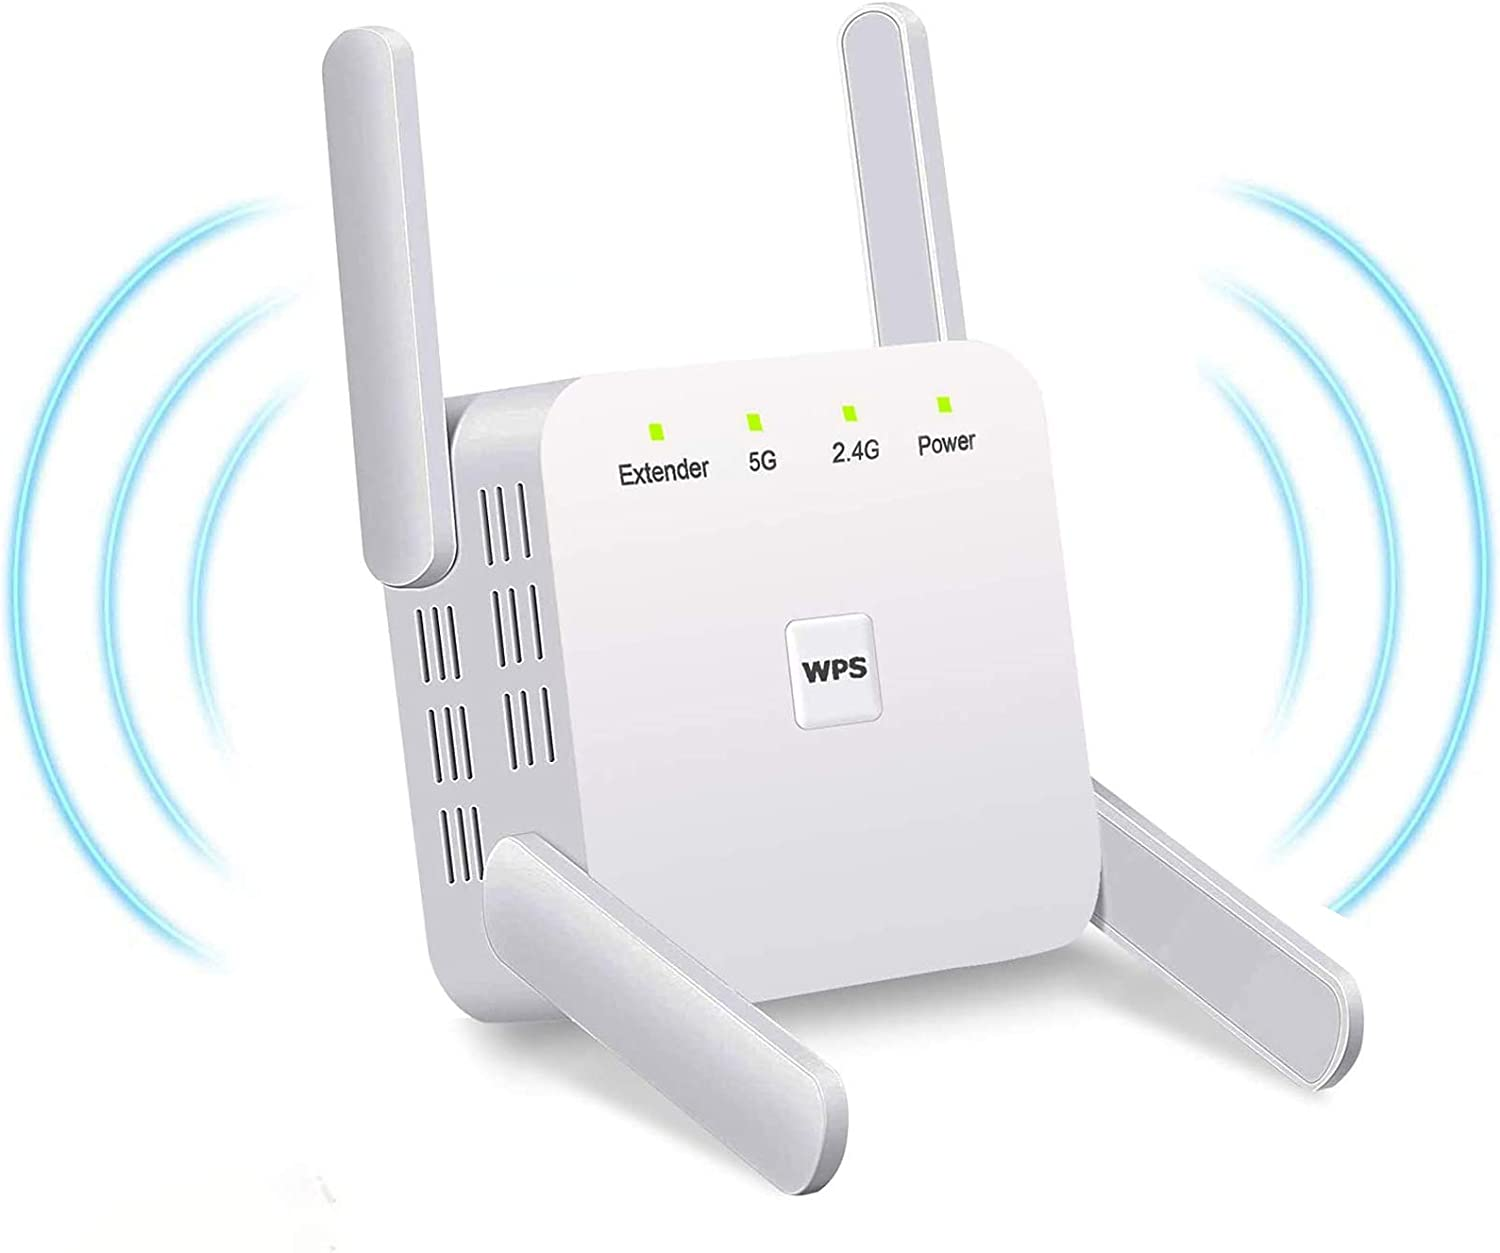 WiFi Extender 1200Mbps WiFi Booster Range Extender Dual Band 2.4GHz 5Ghz Wifi Extender Booster WiFi Range Extender with Ethernet Port Plug and Play UK Plug